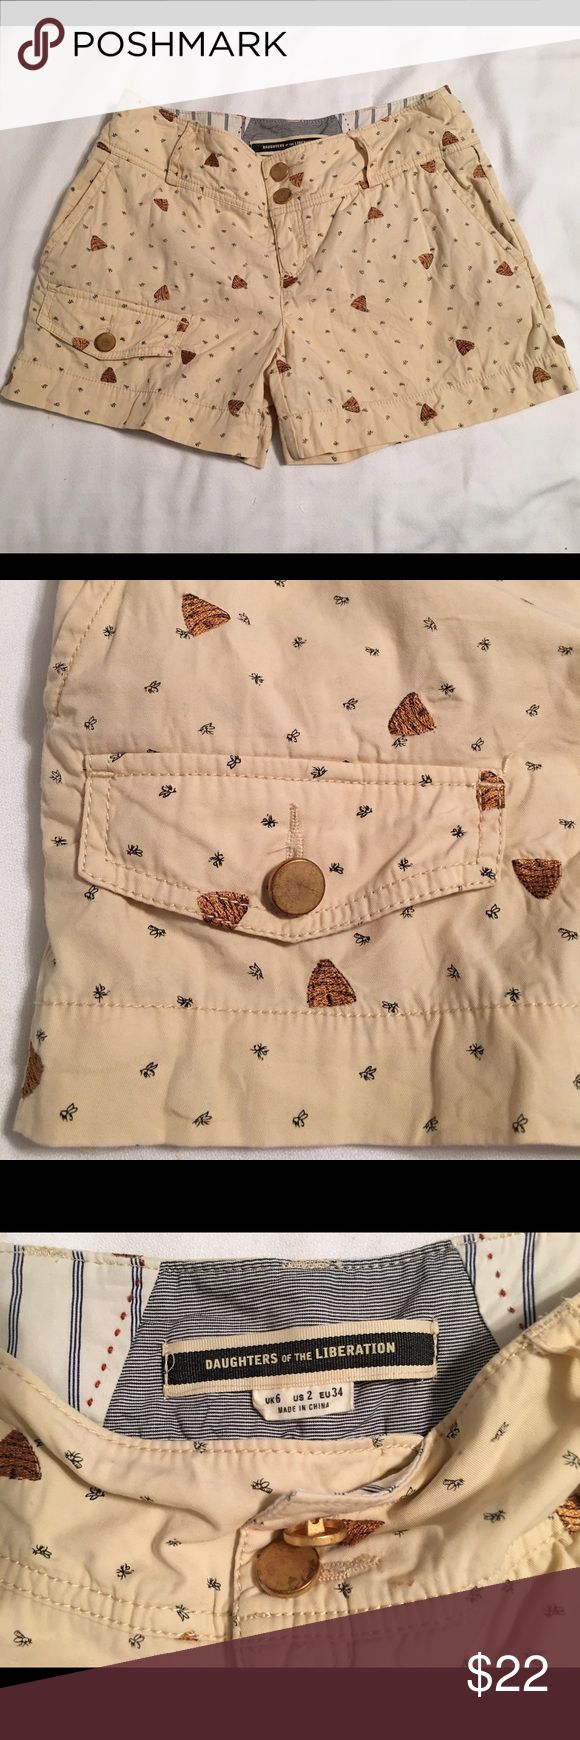 Anthropologie Daughters of the Liberation Shorts Anthropologie's Daughters of the Liberation shorts are embroidered with precious little bee hives. Has double buttons in the front with a cargo pocket & also has two back pockets. So so cute!!! Great condition! Anthropologie Shorts